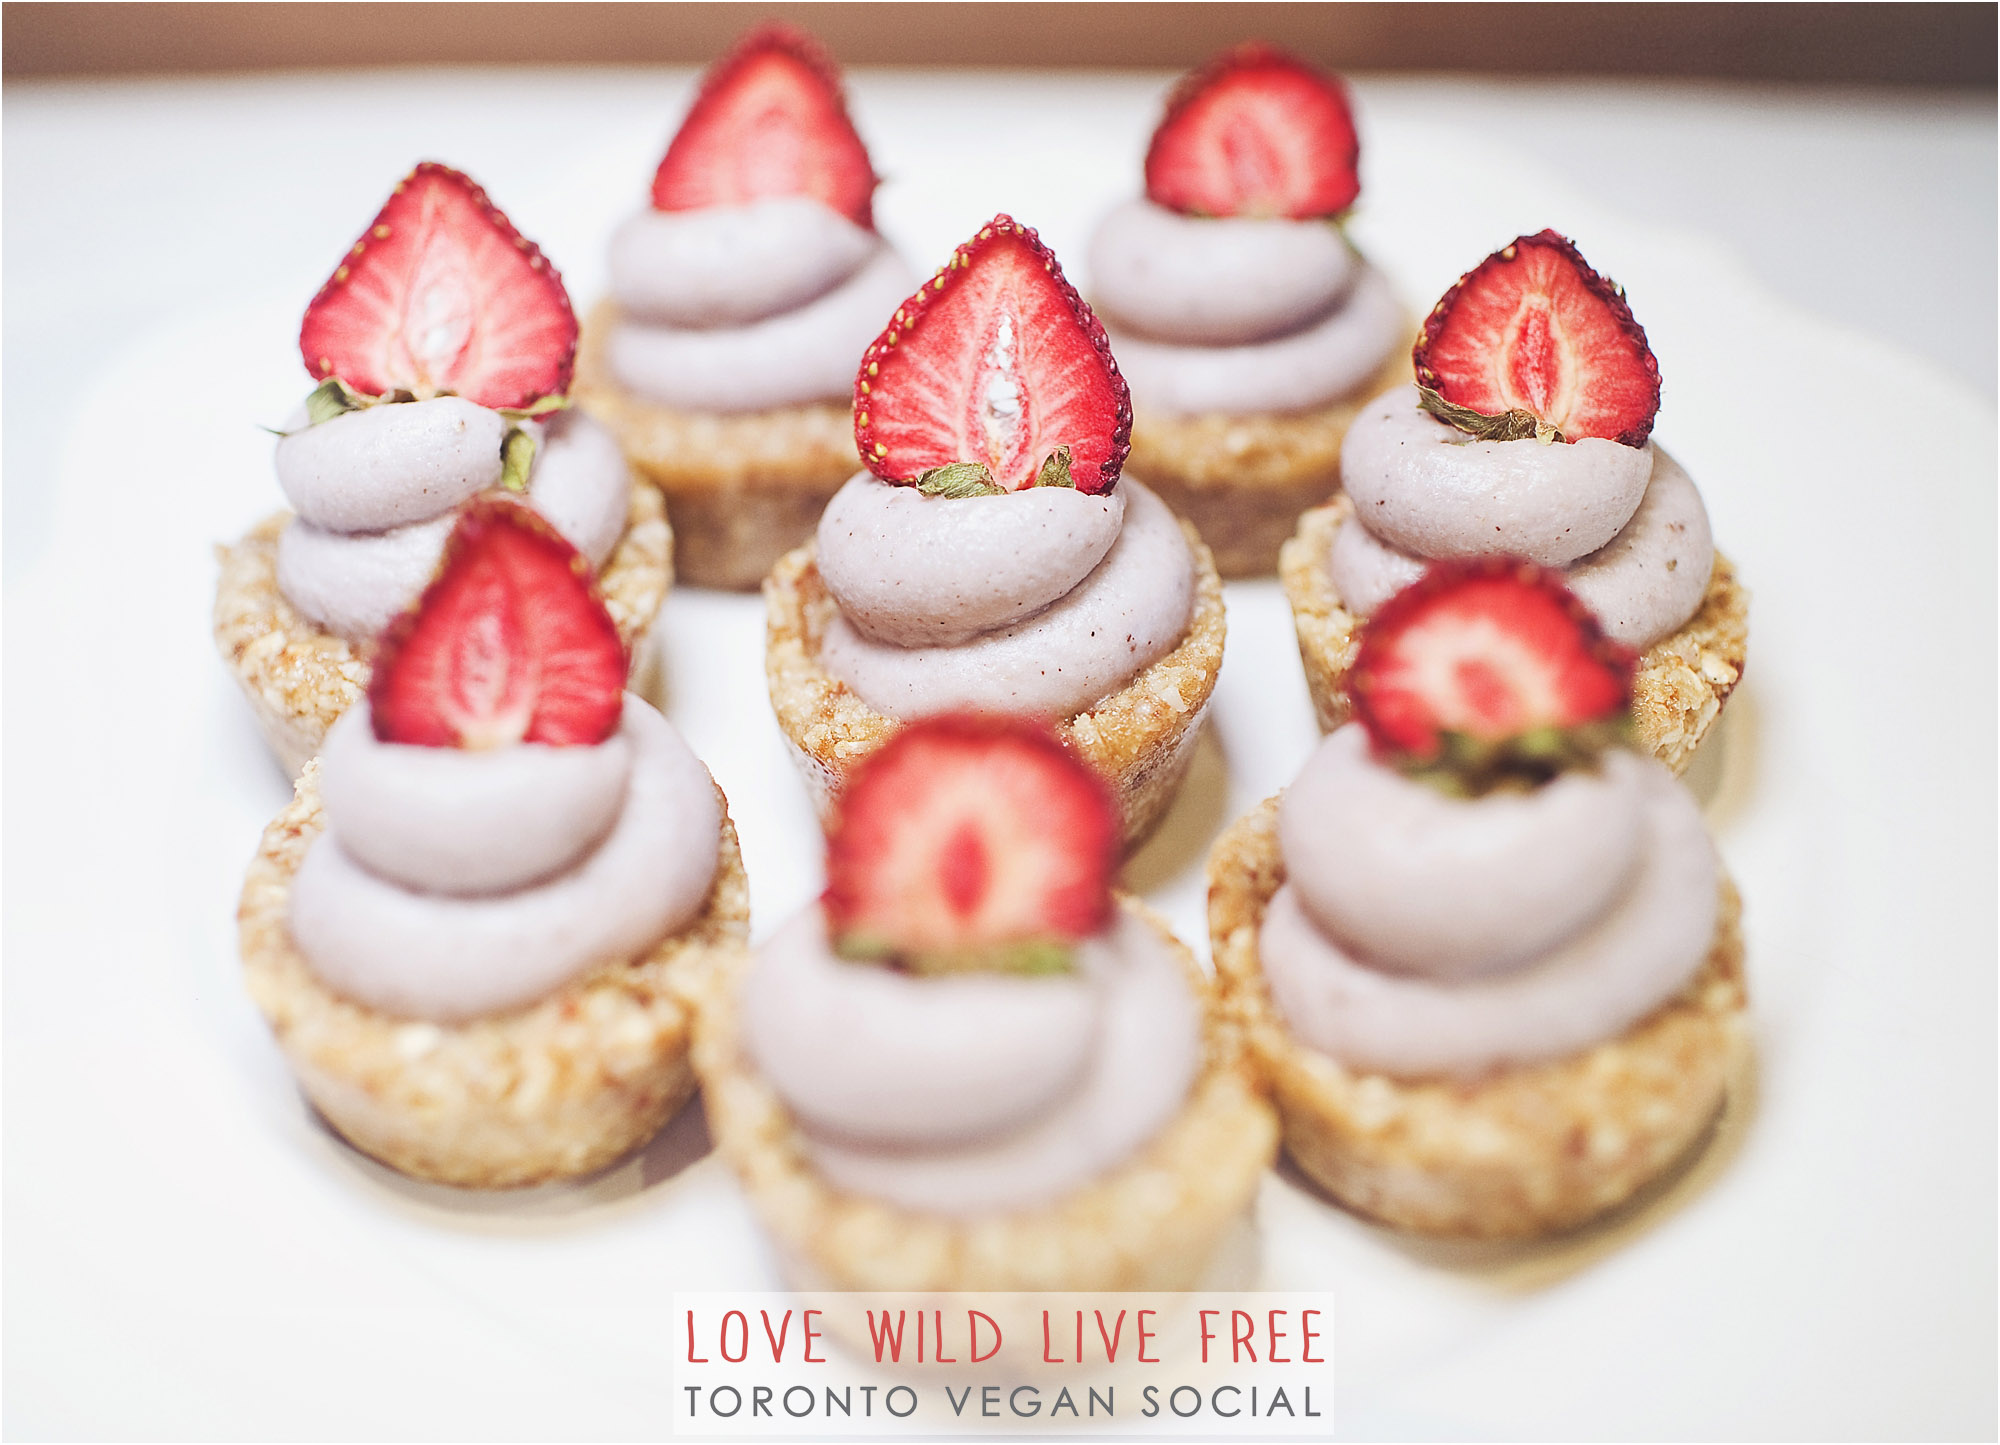 Unbaked Cake Co.strawberry tarts from the Love Wild Live Free Vegan Social. Photo by: Impact Media .